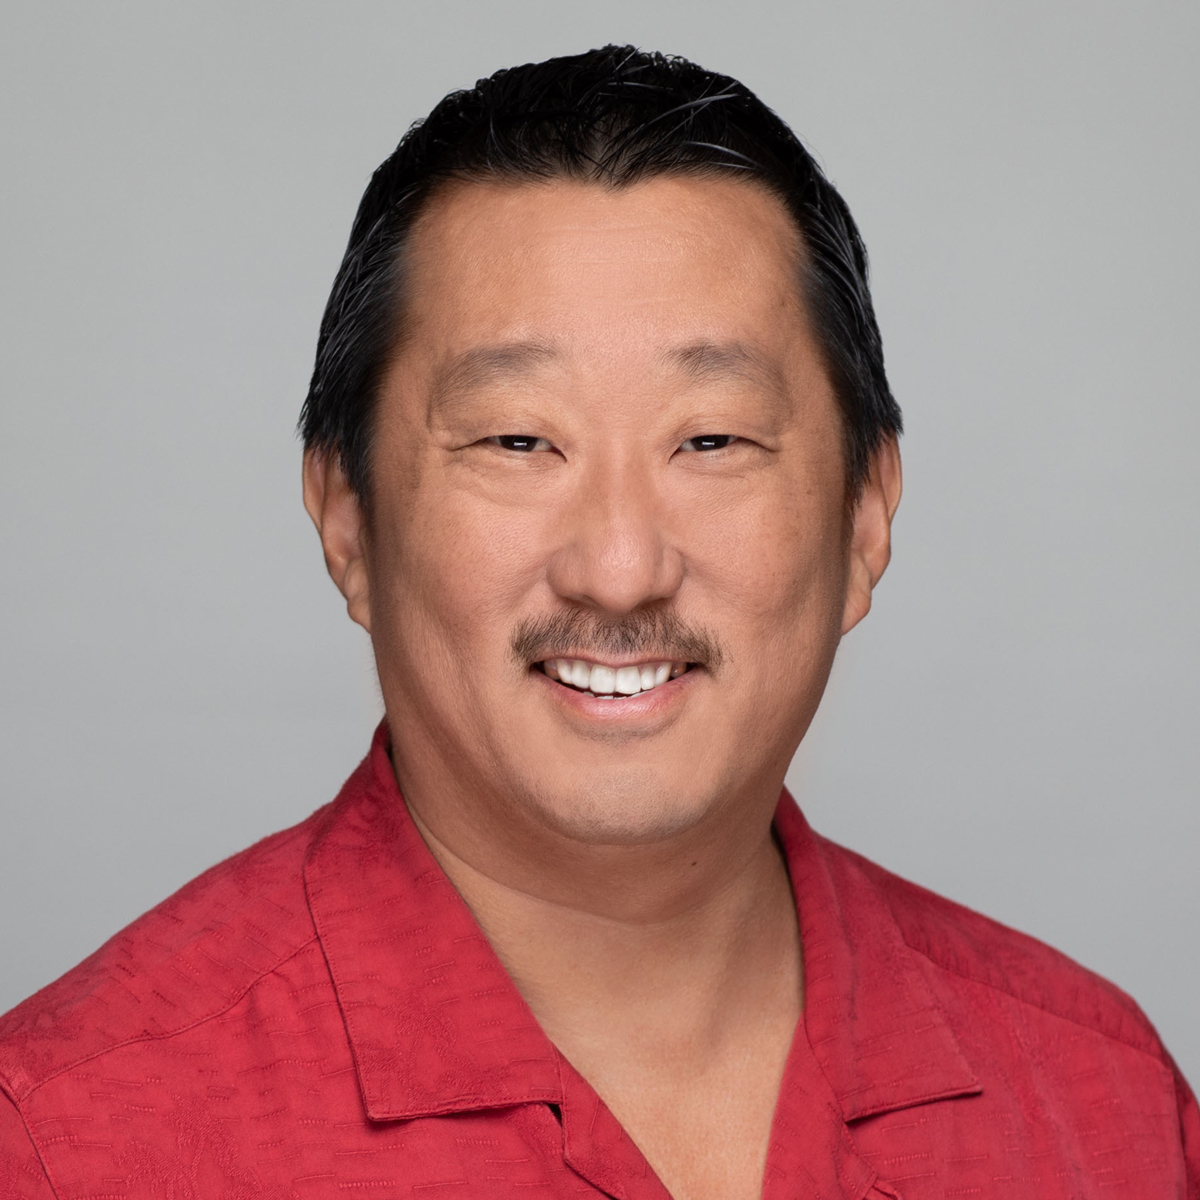 Ryan Doi Headshot